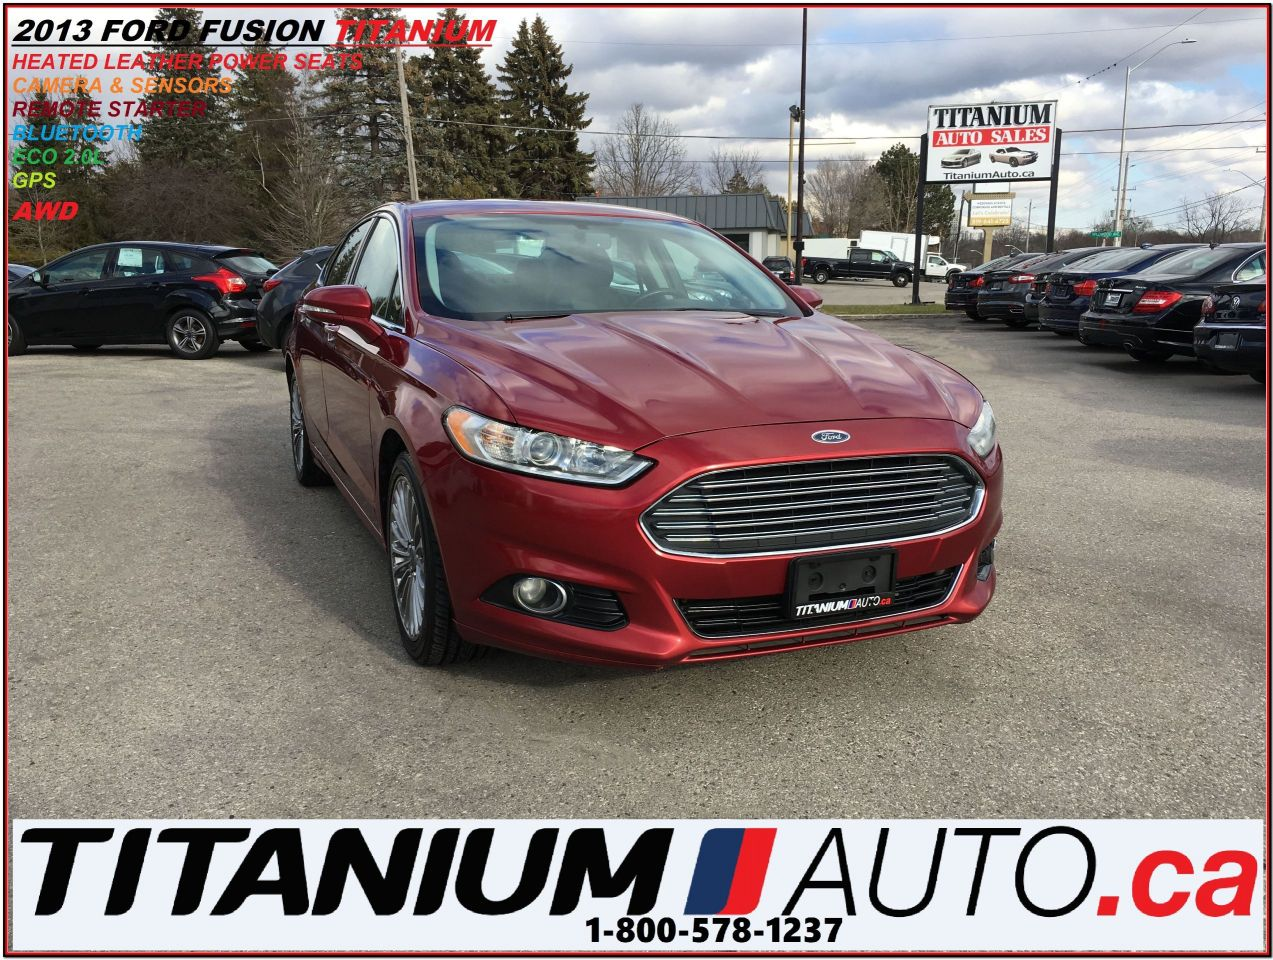 ford key west fusion used pagespeed owned pre banner ic